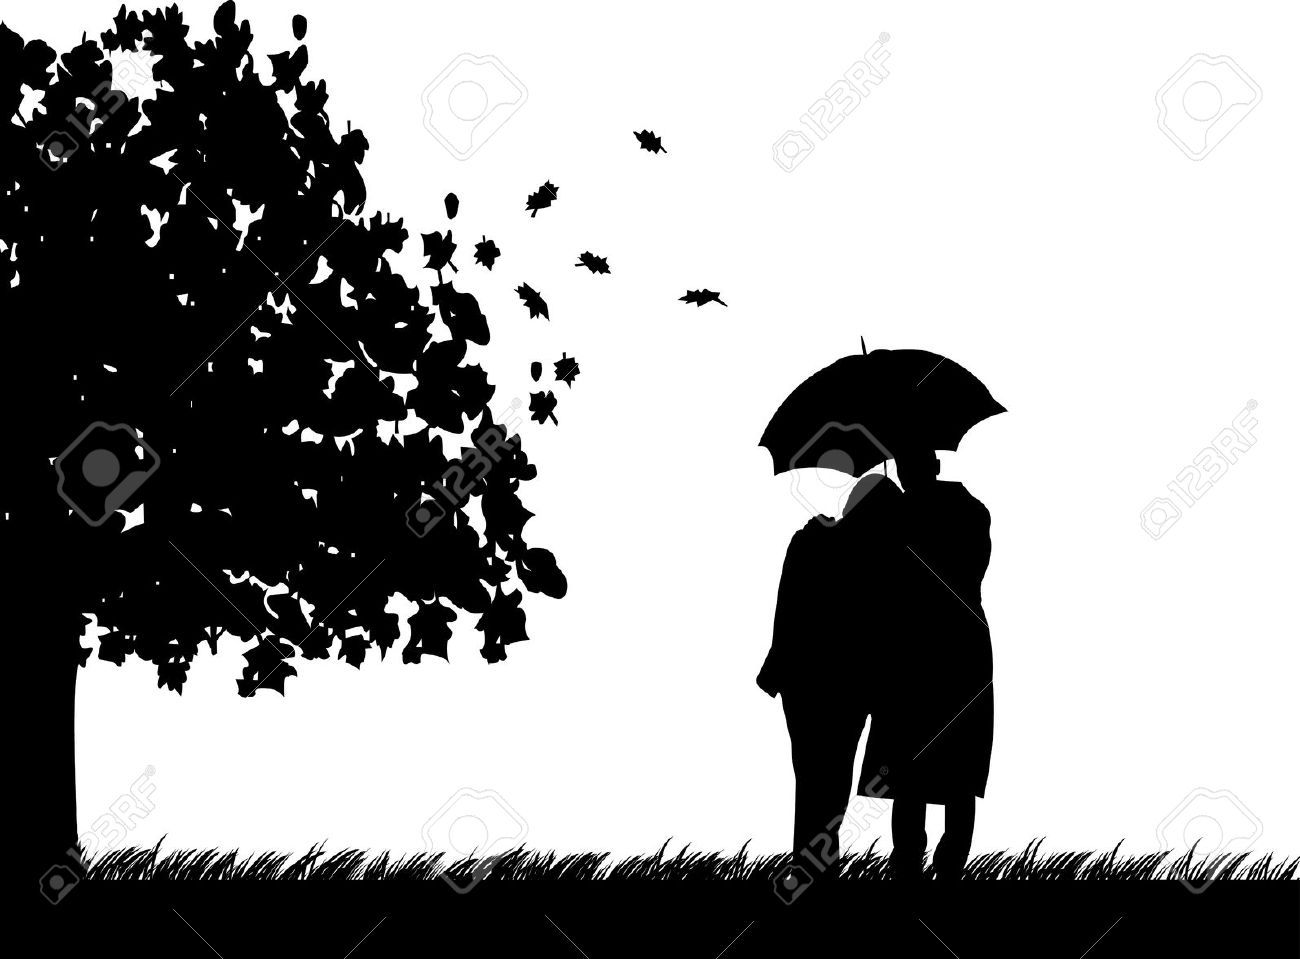 Background With Couple Walking Umbrella Under The Tree In Autumn Or Fall Silhouette One Series Of Similar Images Illustration